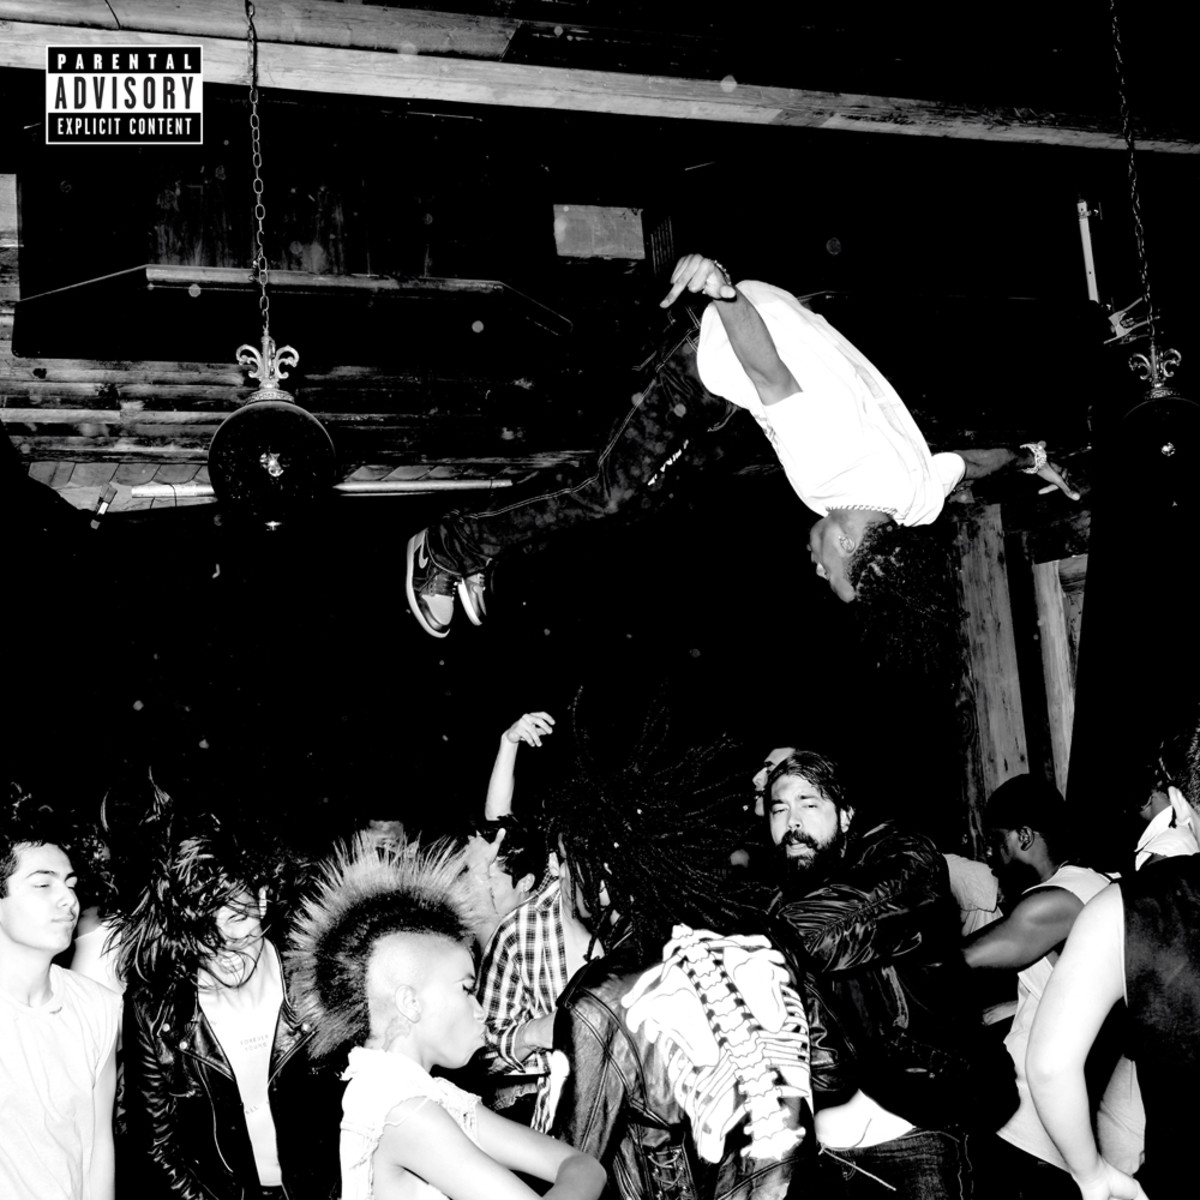 playboi-carti-die-lit-album-art